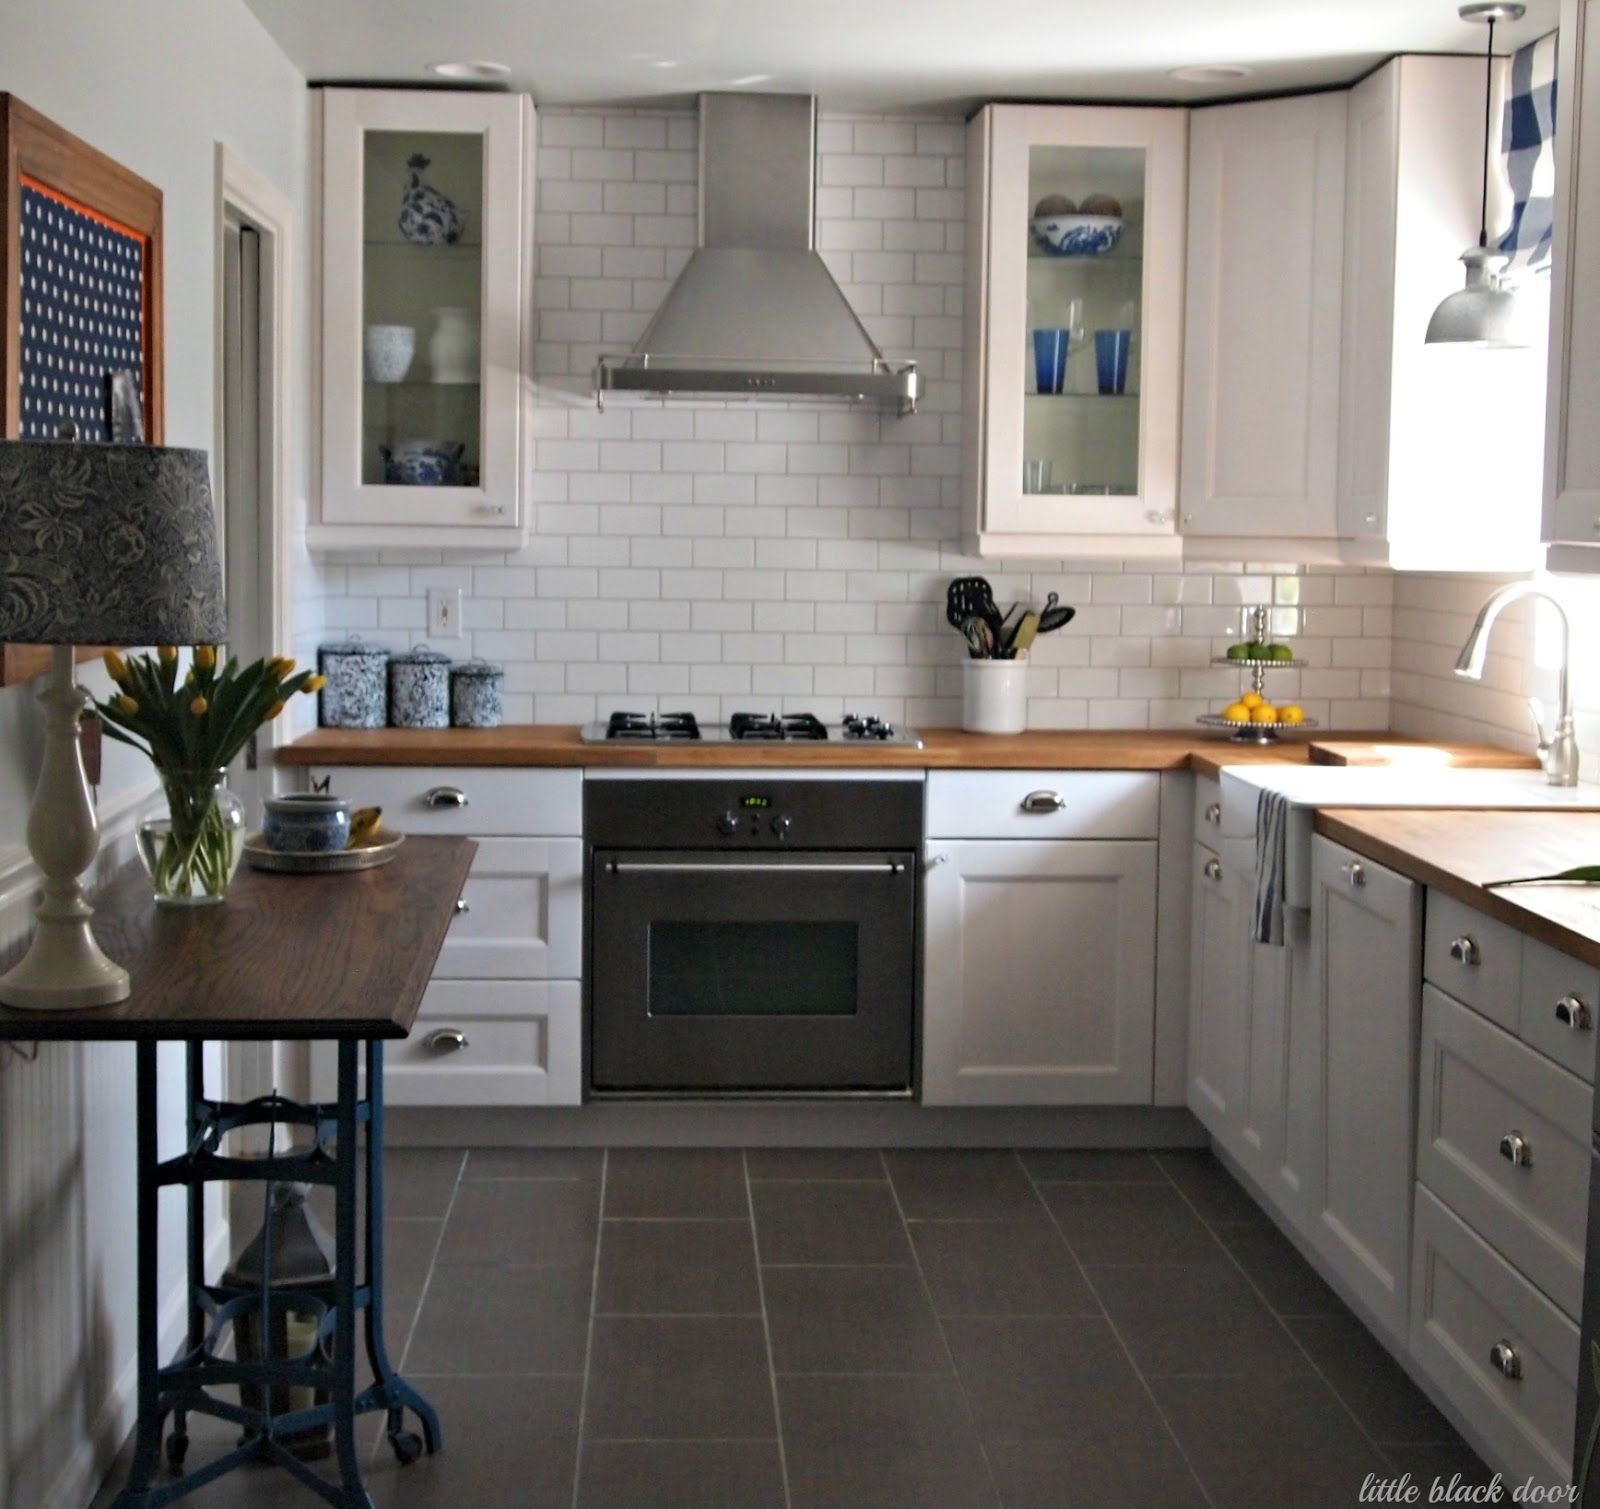 L Shaped Modern Kitchen Designs: Great Before And After. Love The Subway Tile, Charcoal